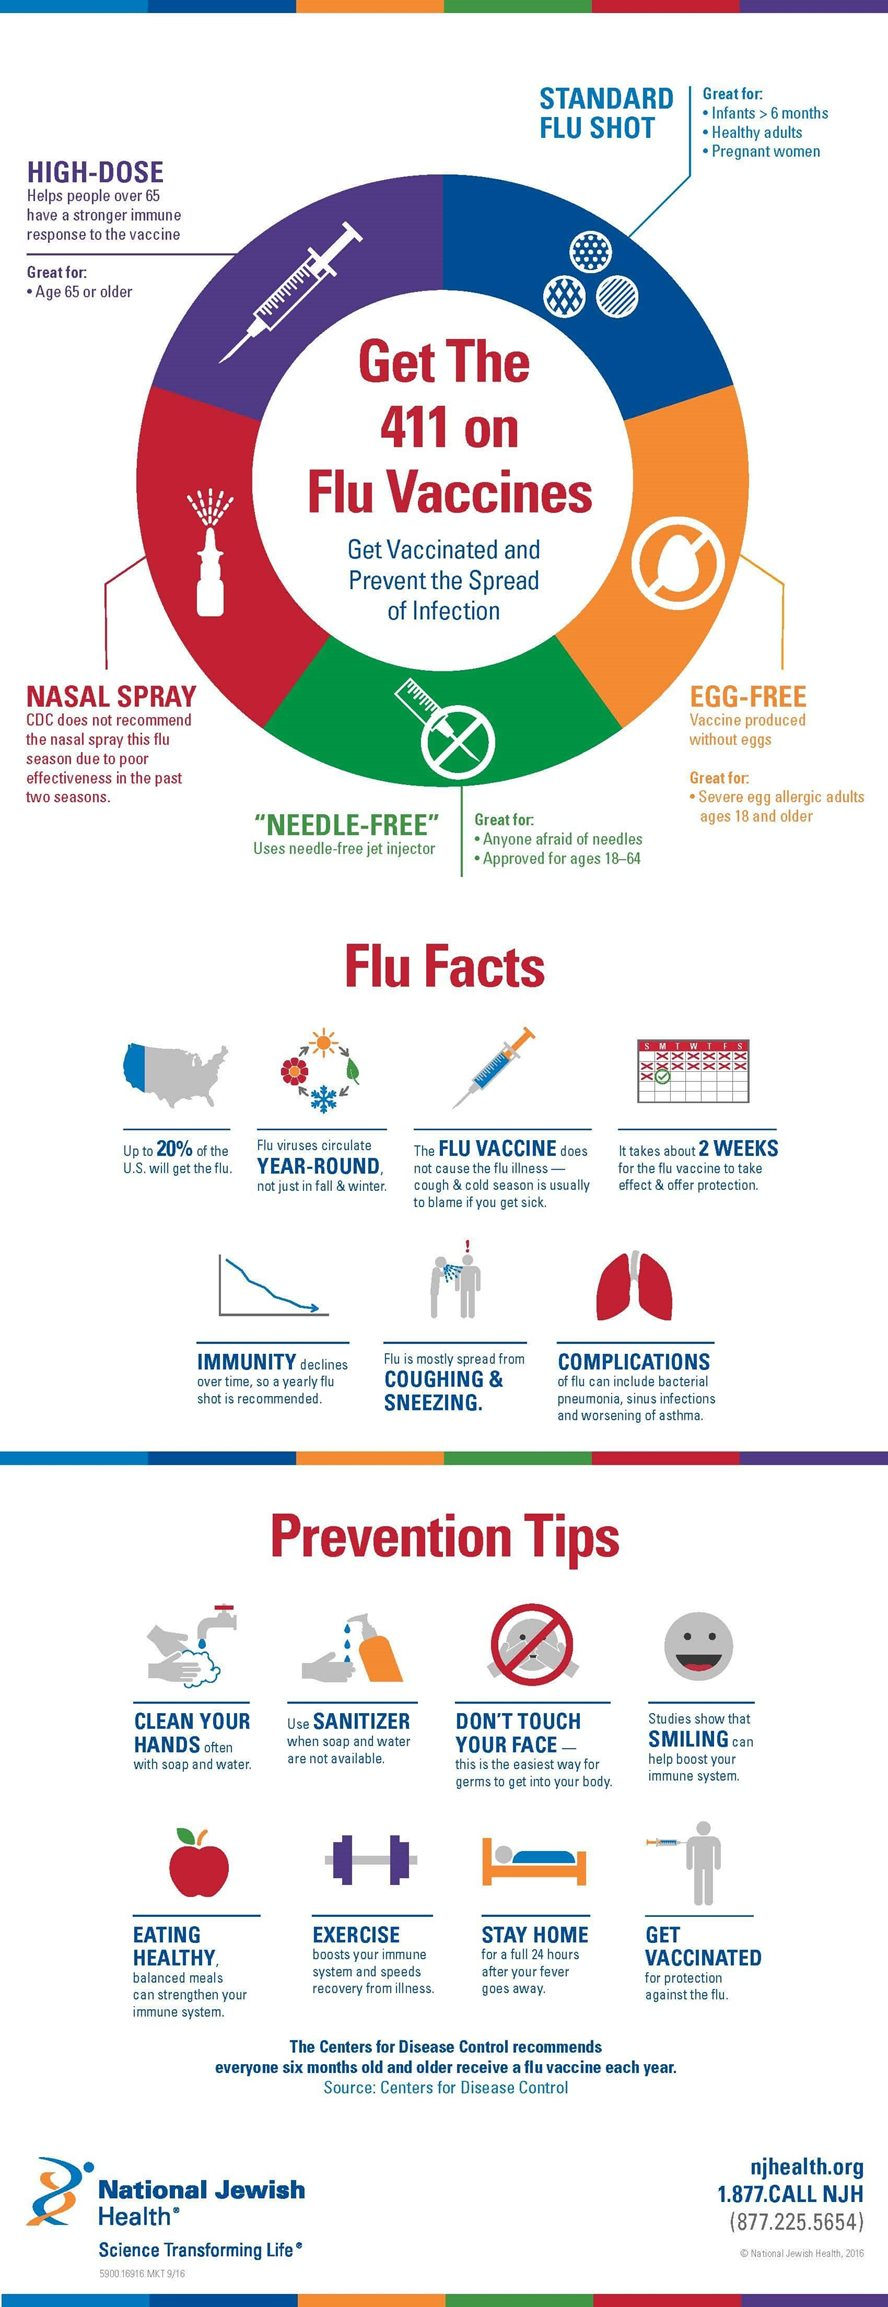 Get the 411 on the Flu Vaccine